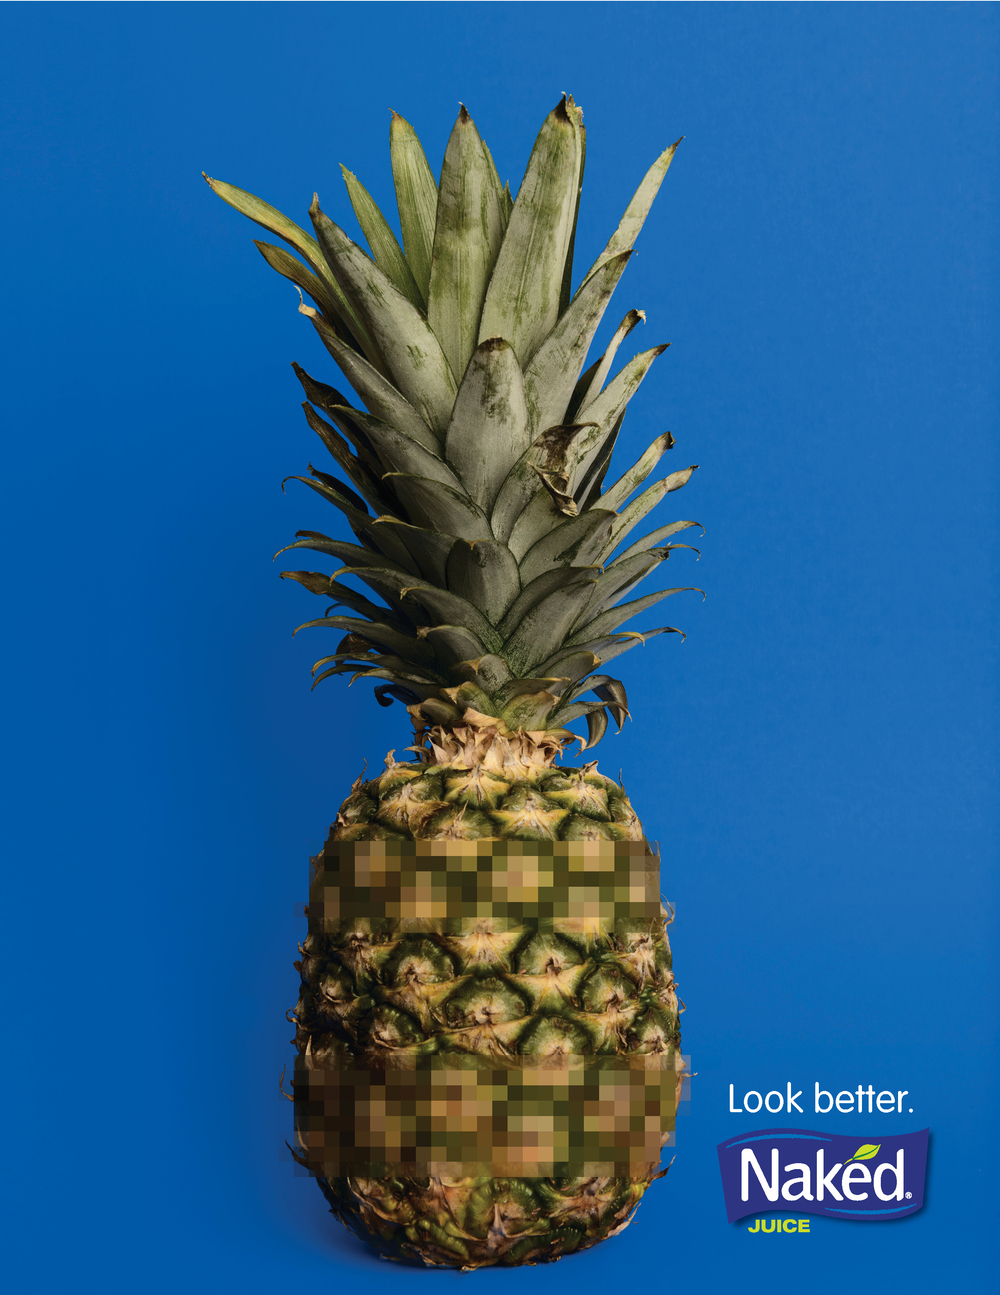 Still life advertising spec work of a pineapple - Naked Juice